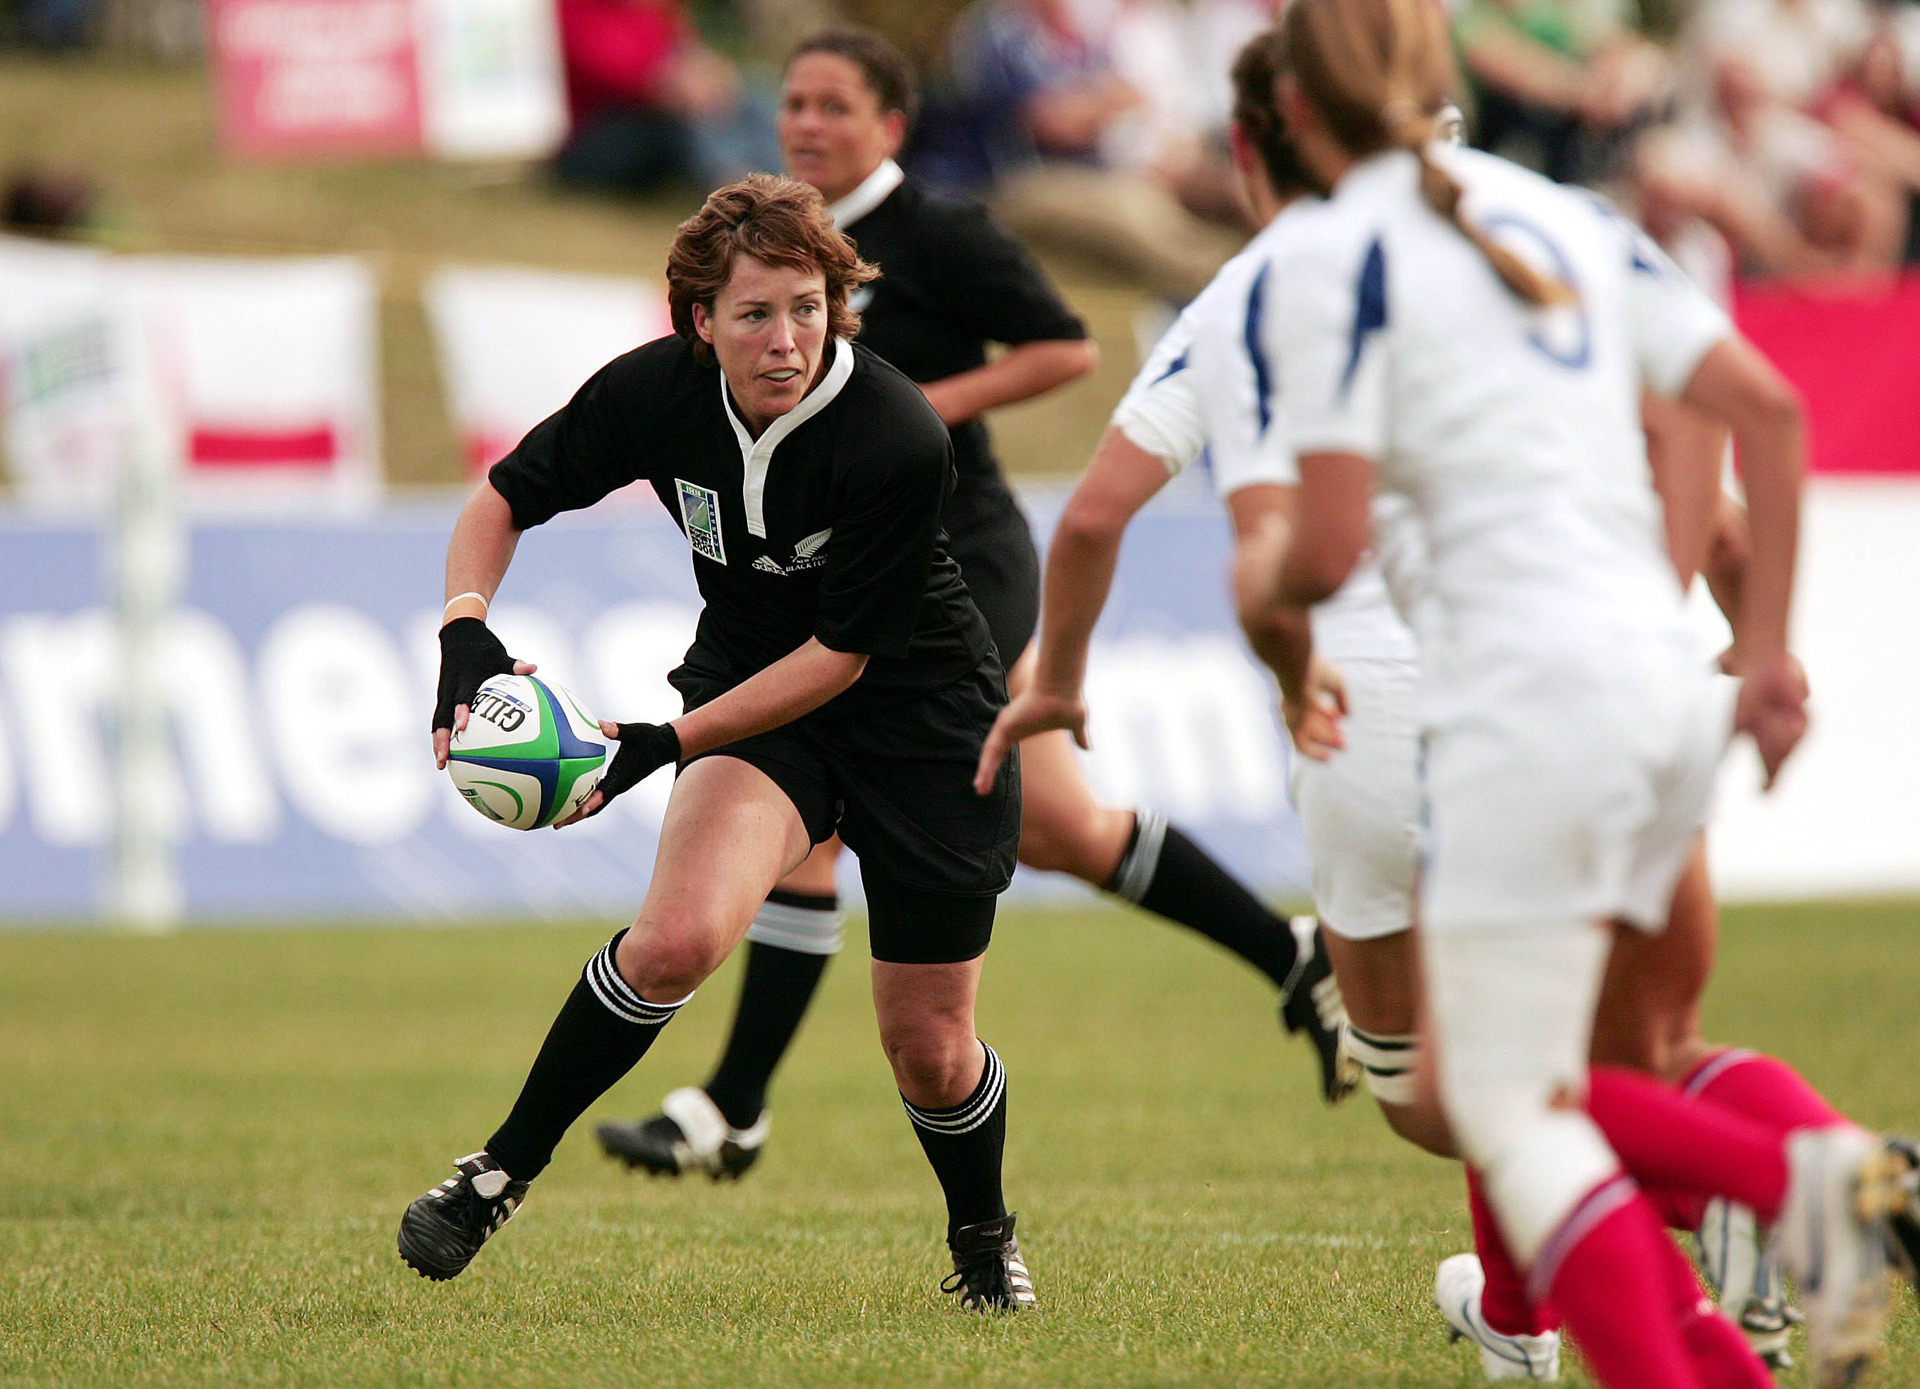 Rugby: Anna Richards to coach women's Barbarians in historic fixtures